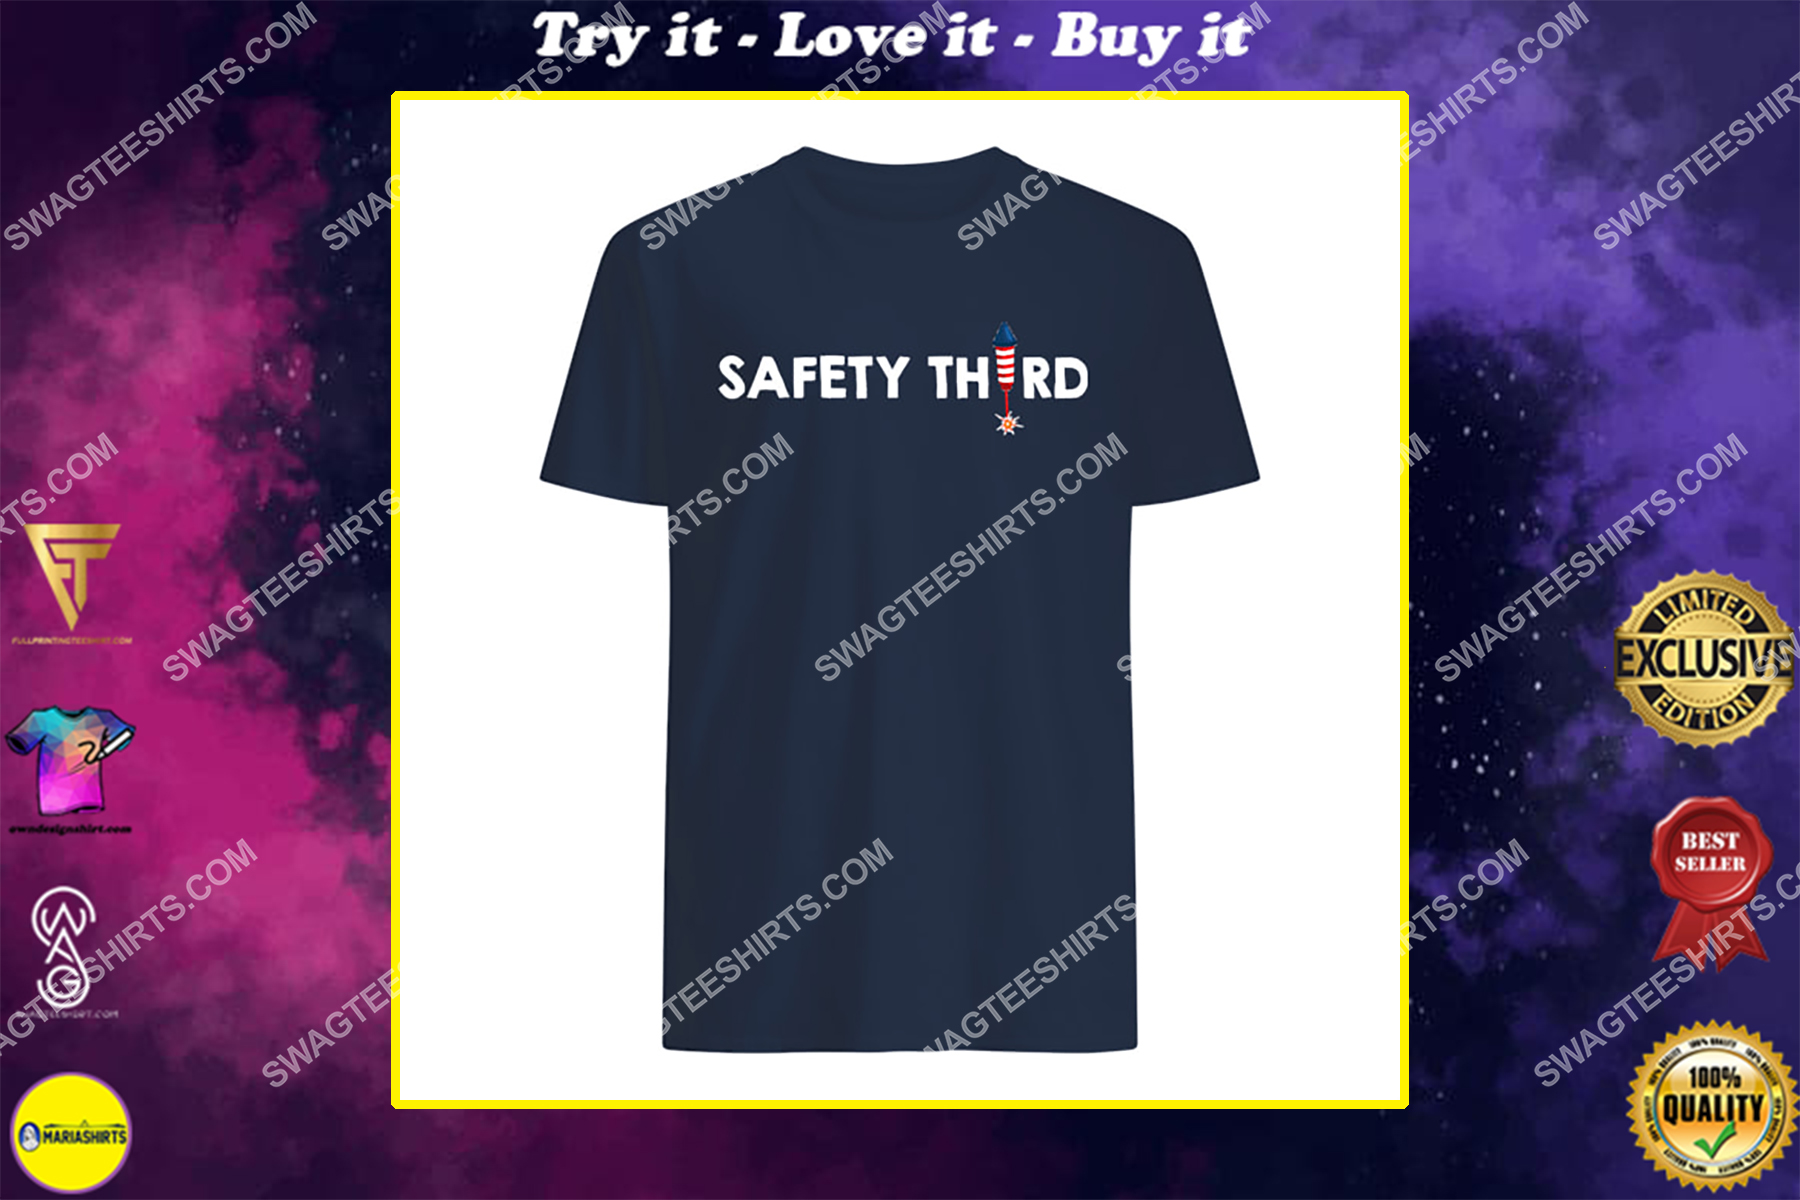 4th of july patriotic fireworks firecrackers safety third shirt